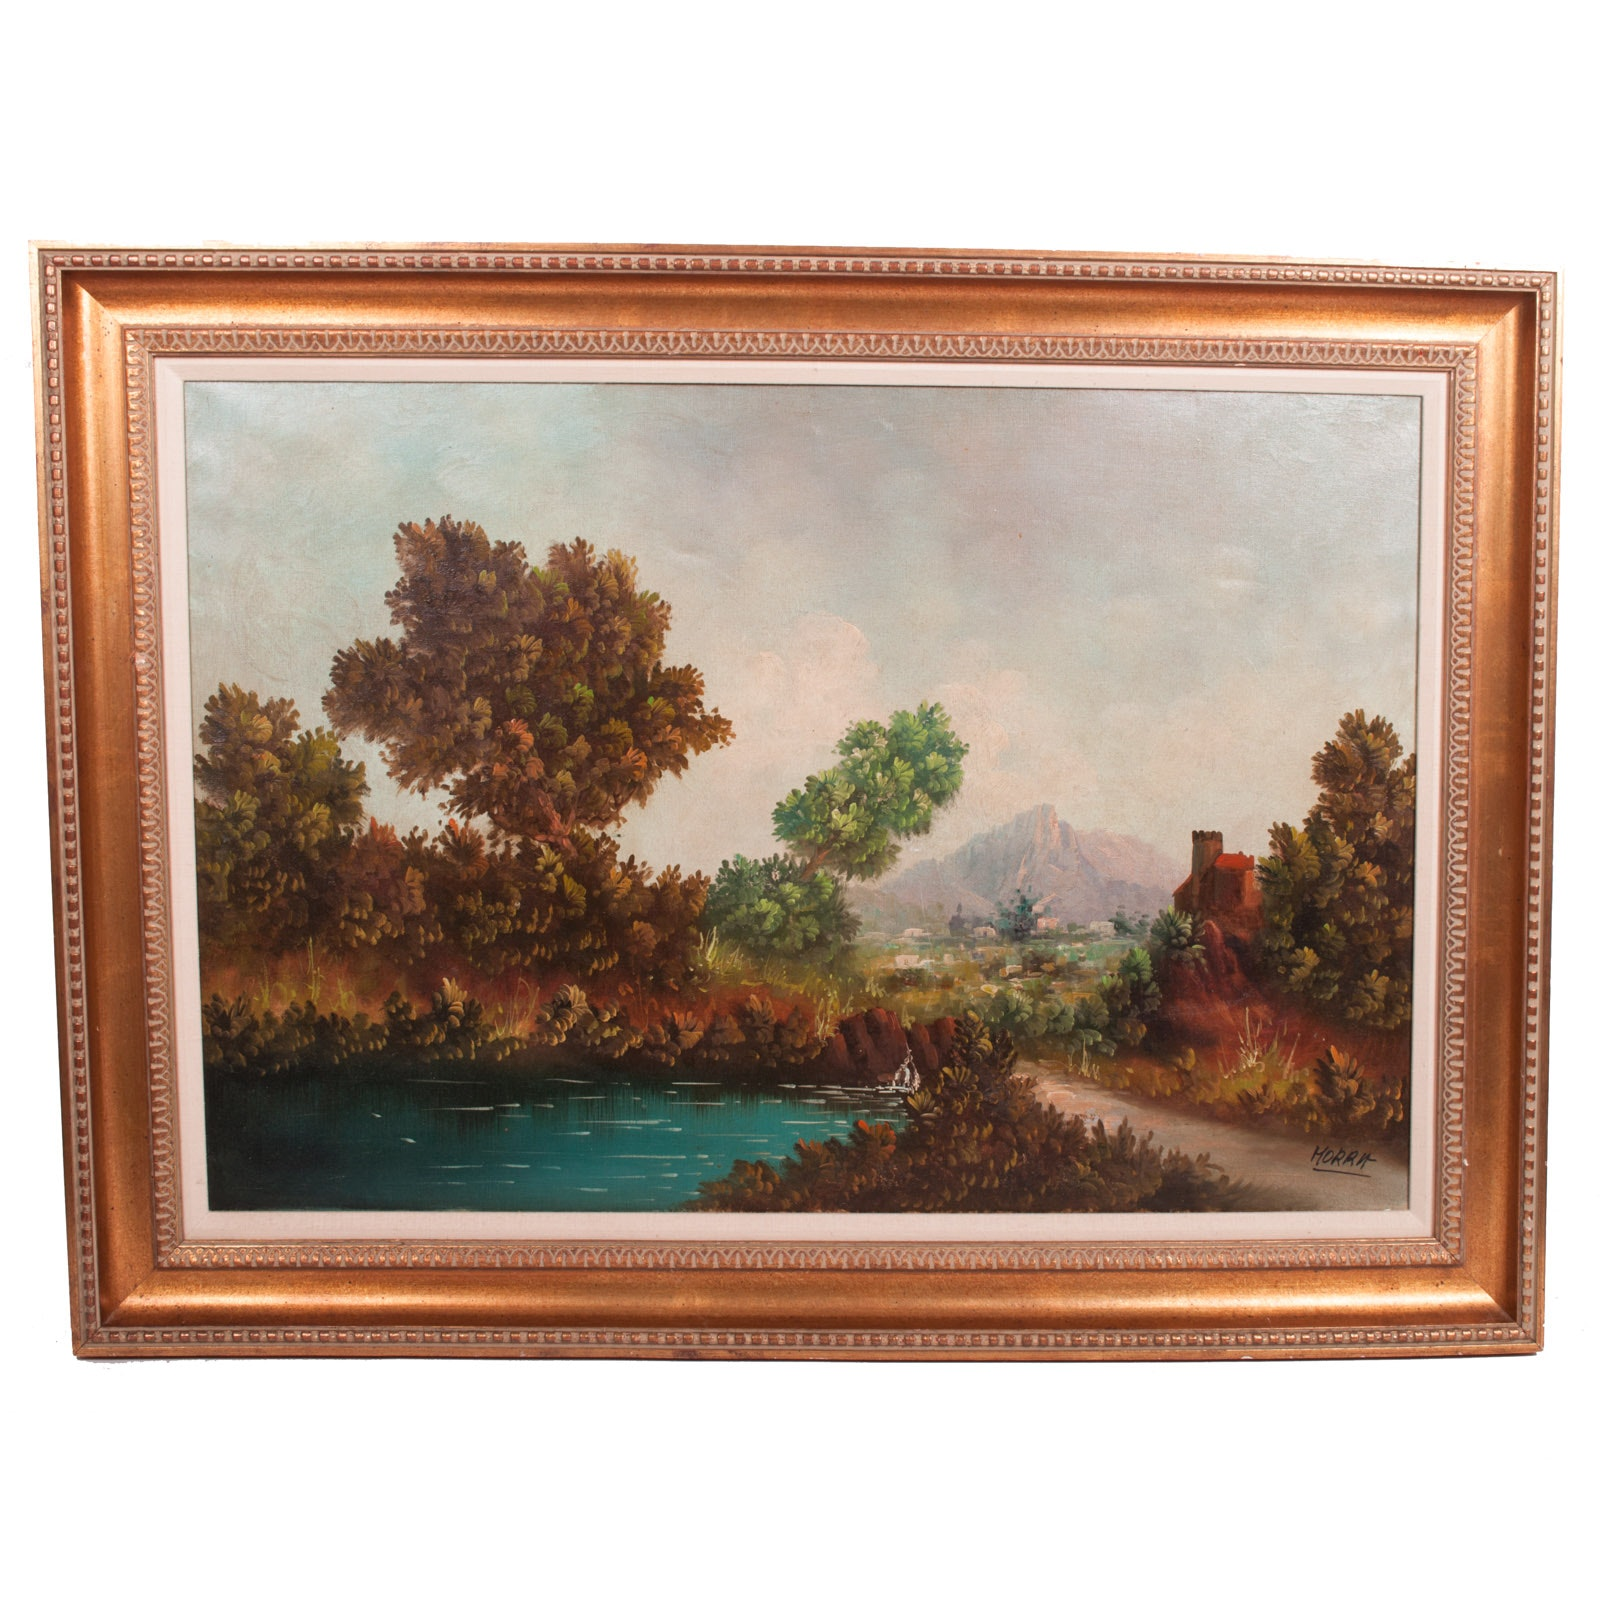 Substantial Oil Painting on Canvas of Landscape